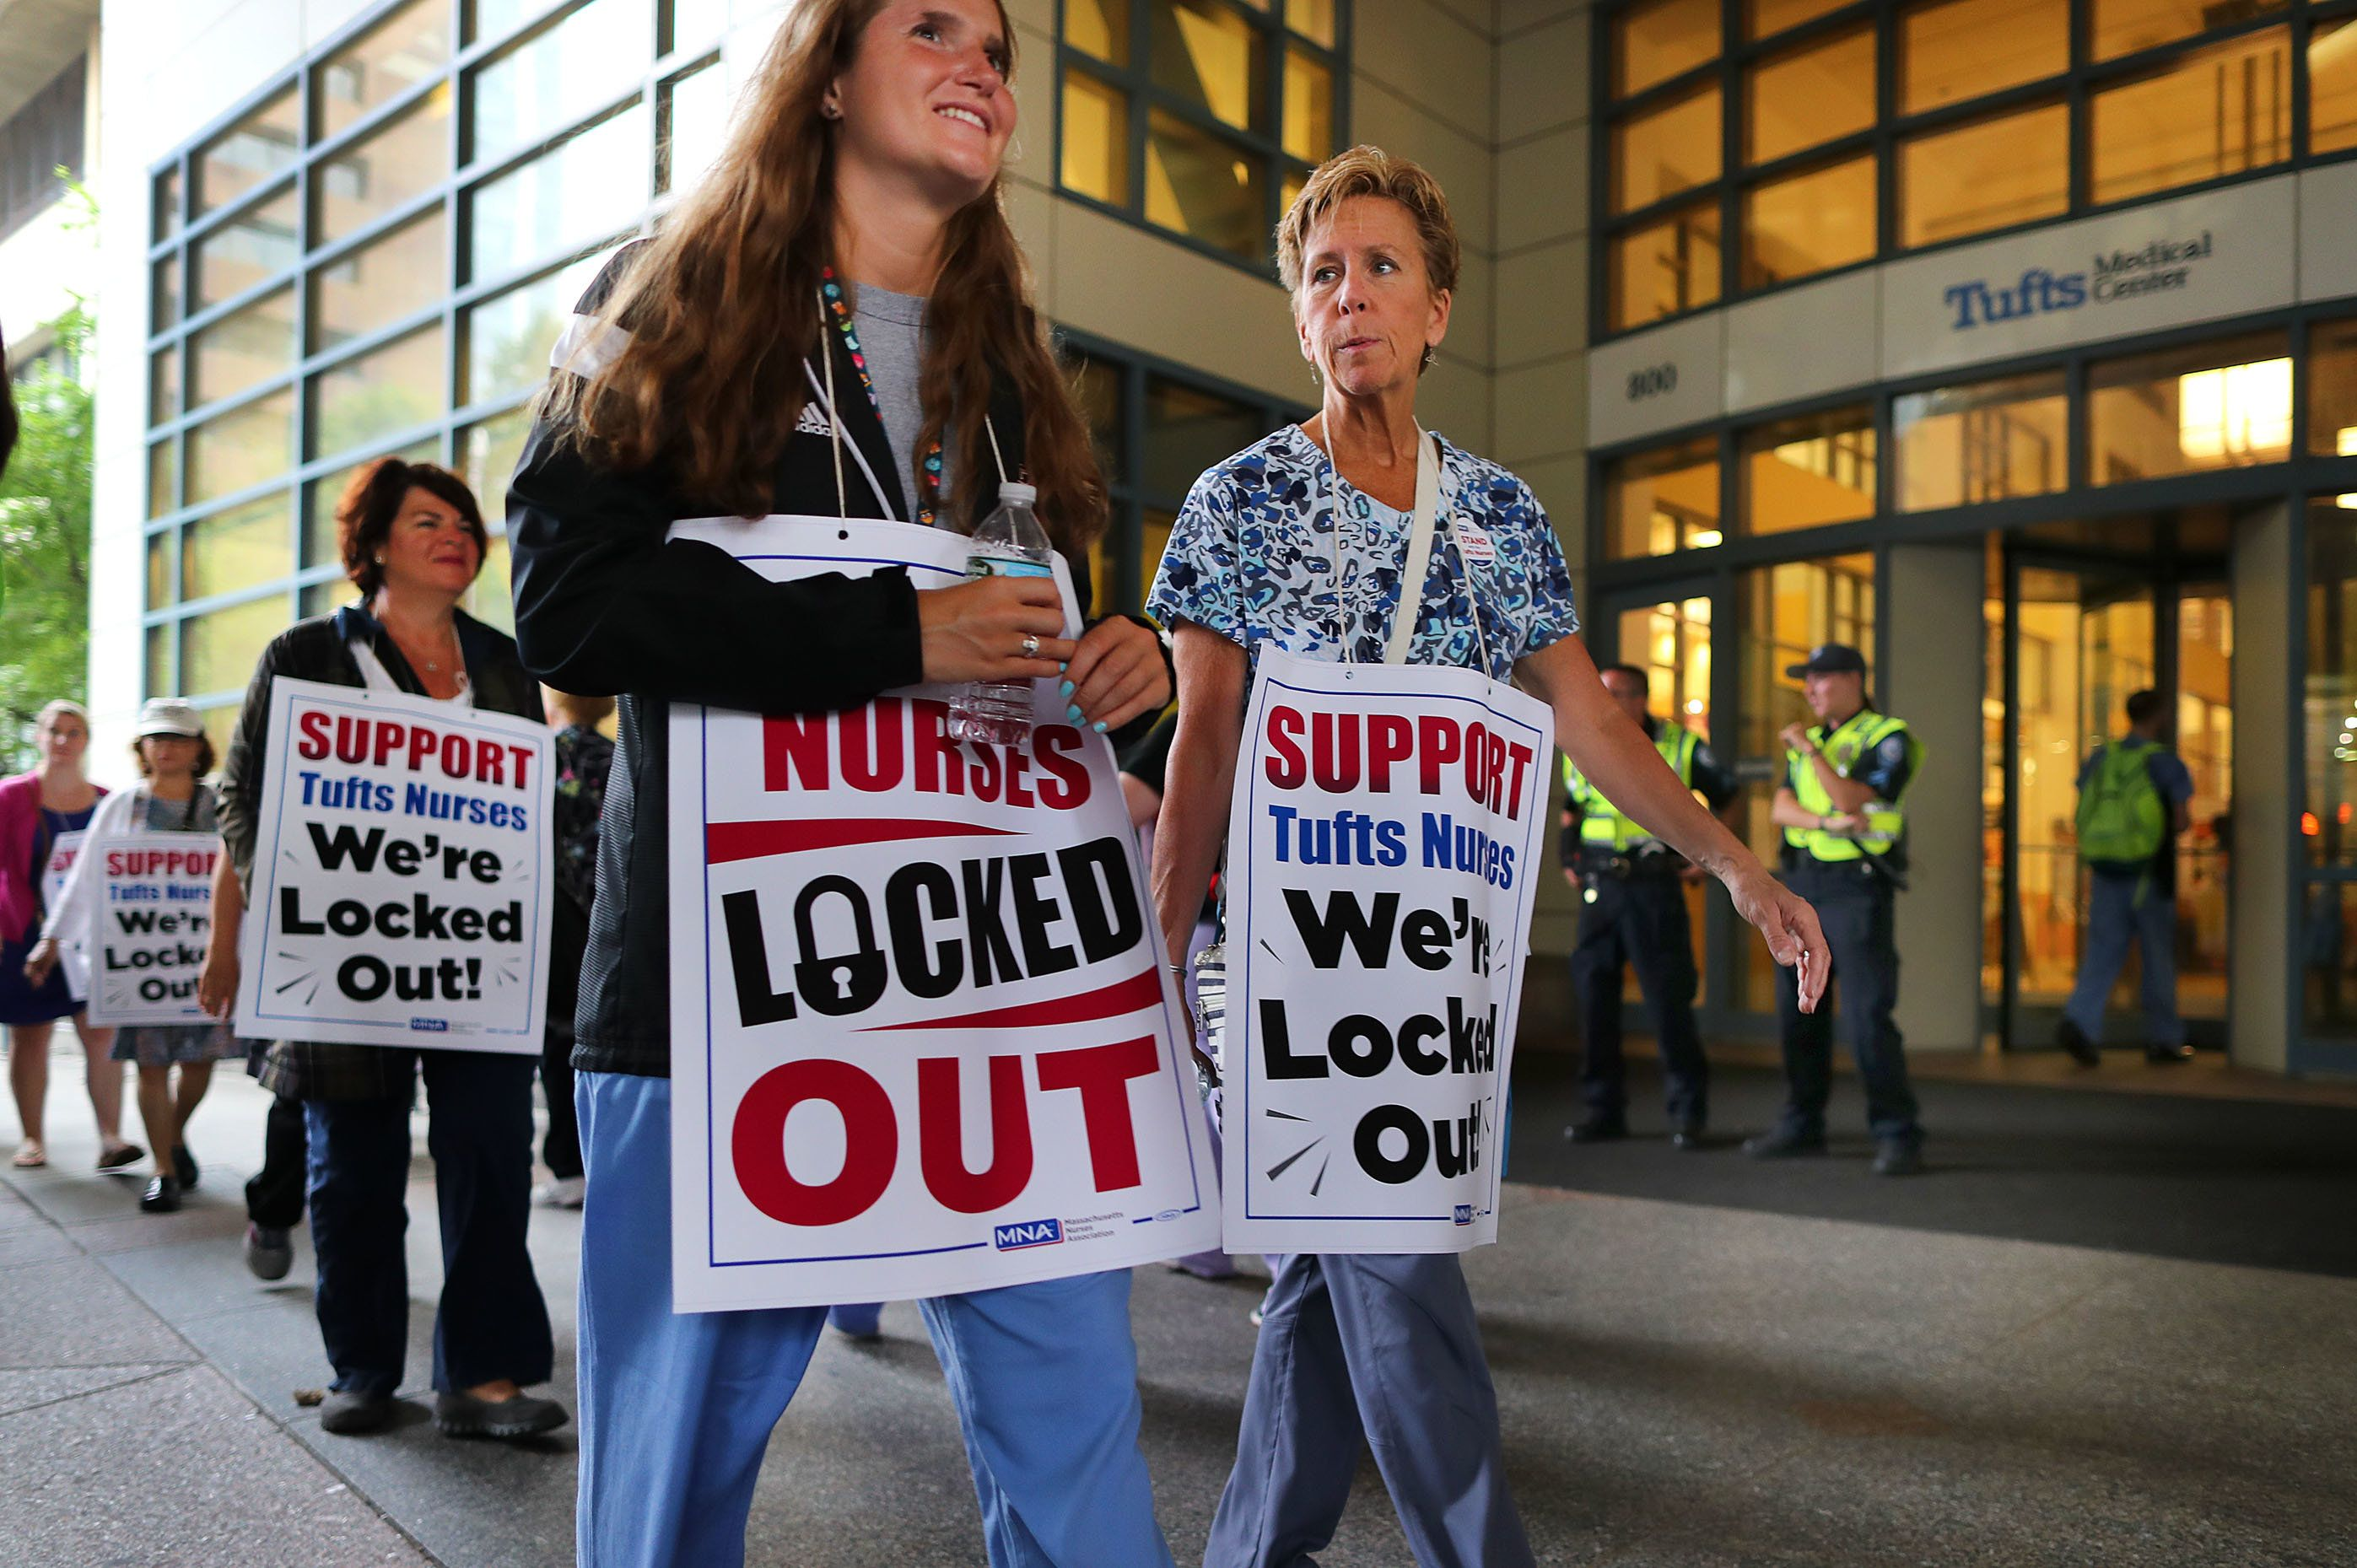 Tufts Medical Center nurses picket in Boston on July 13 after being locked out after a 24-hour strike. One of the sources of